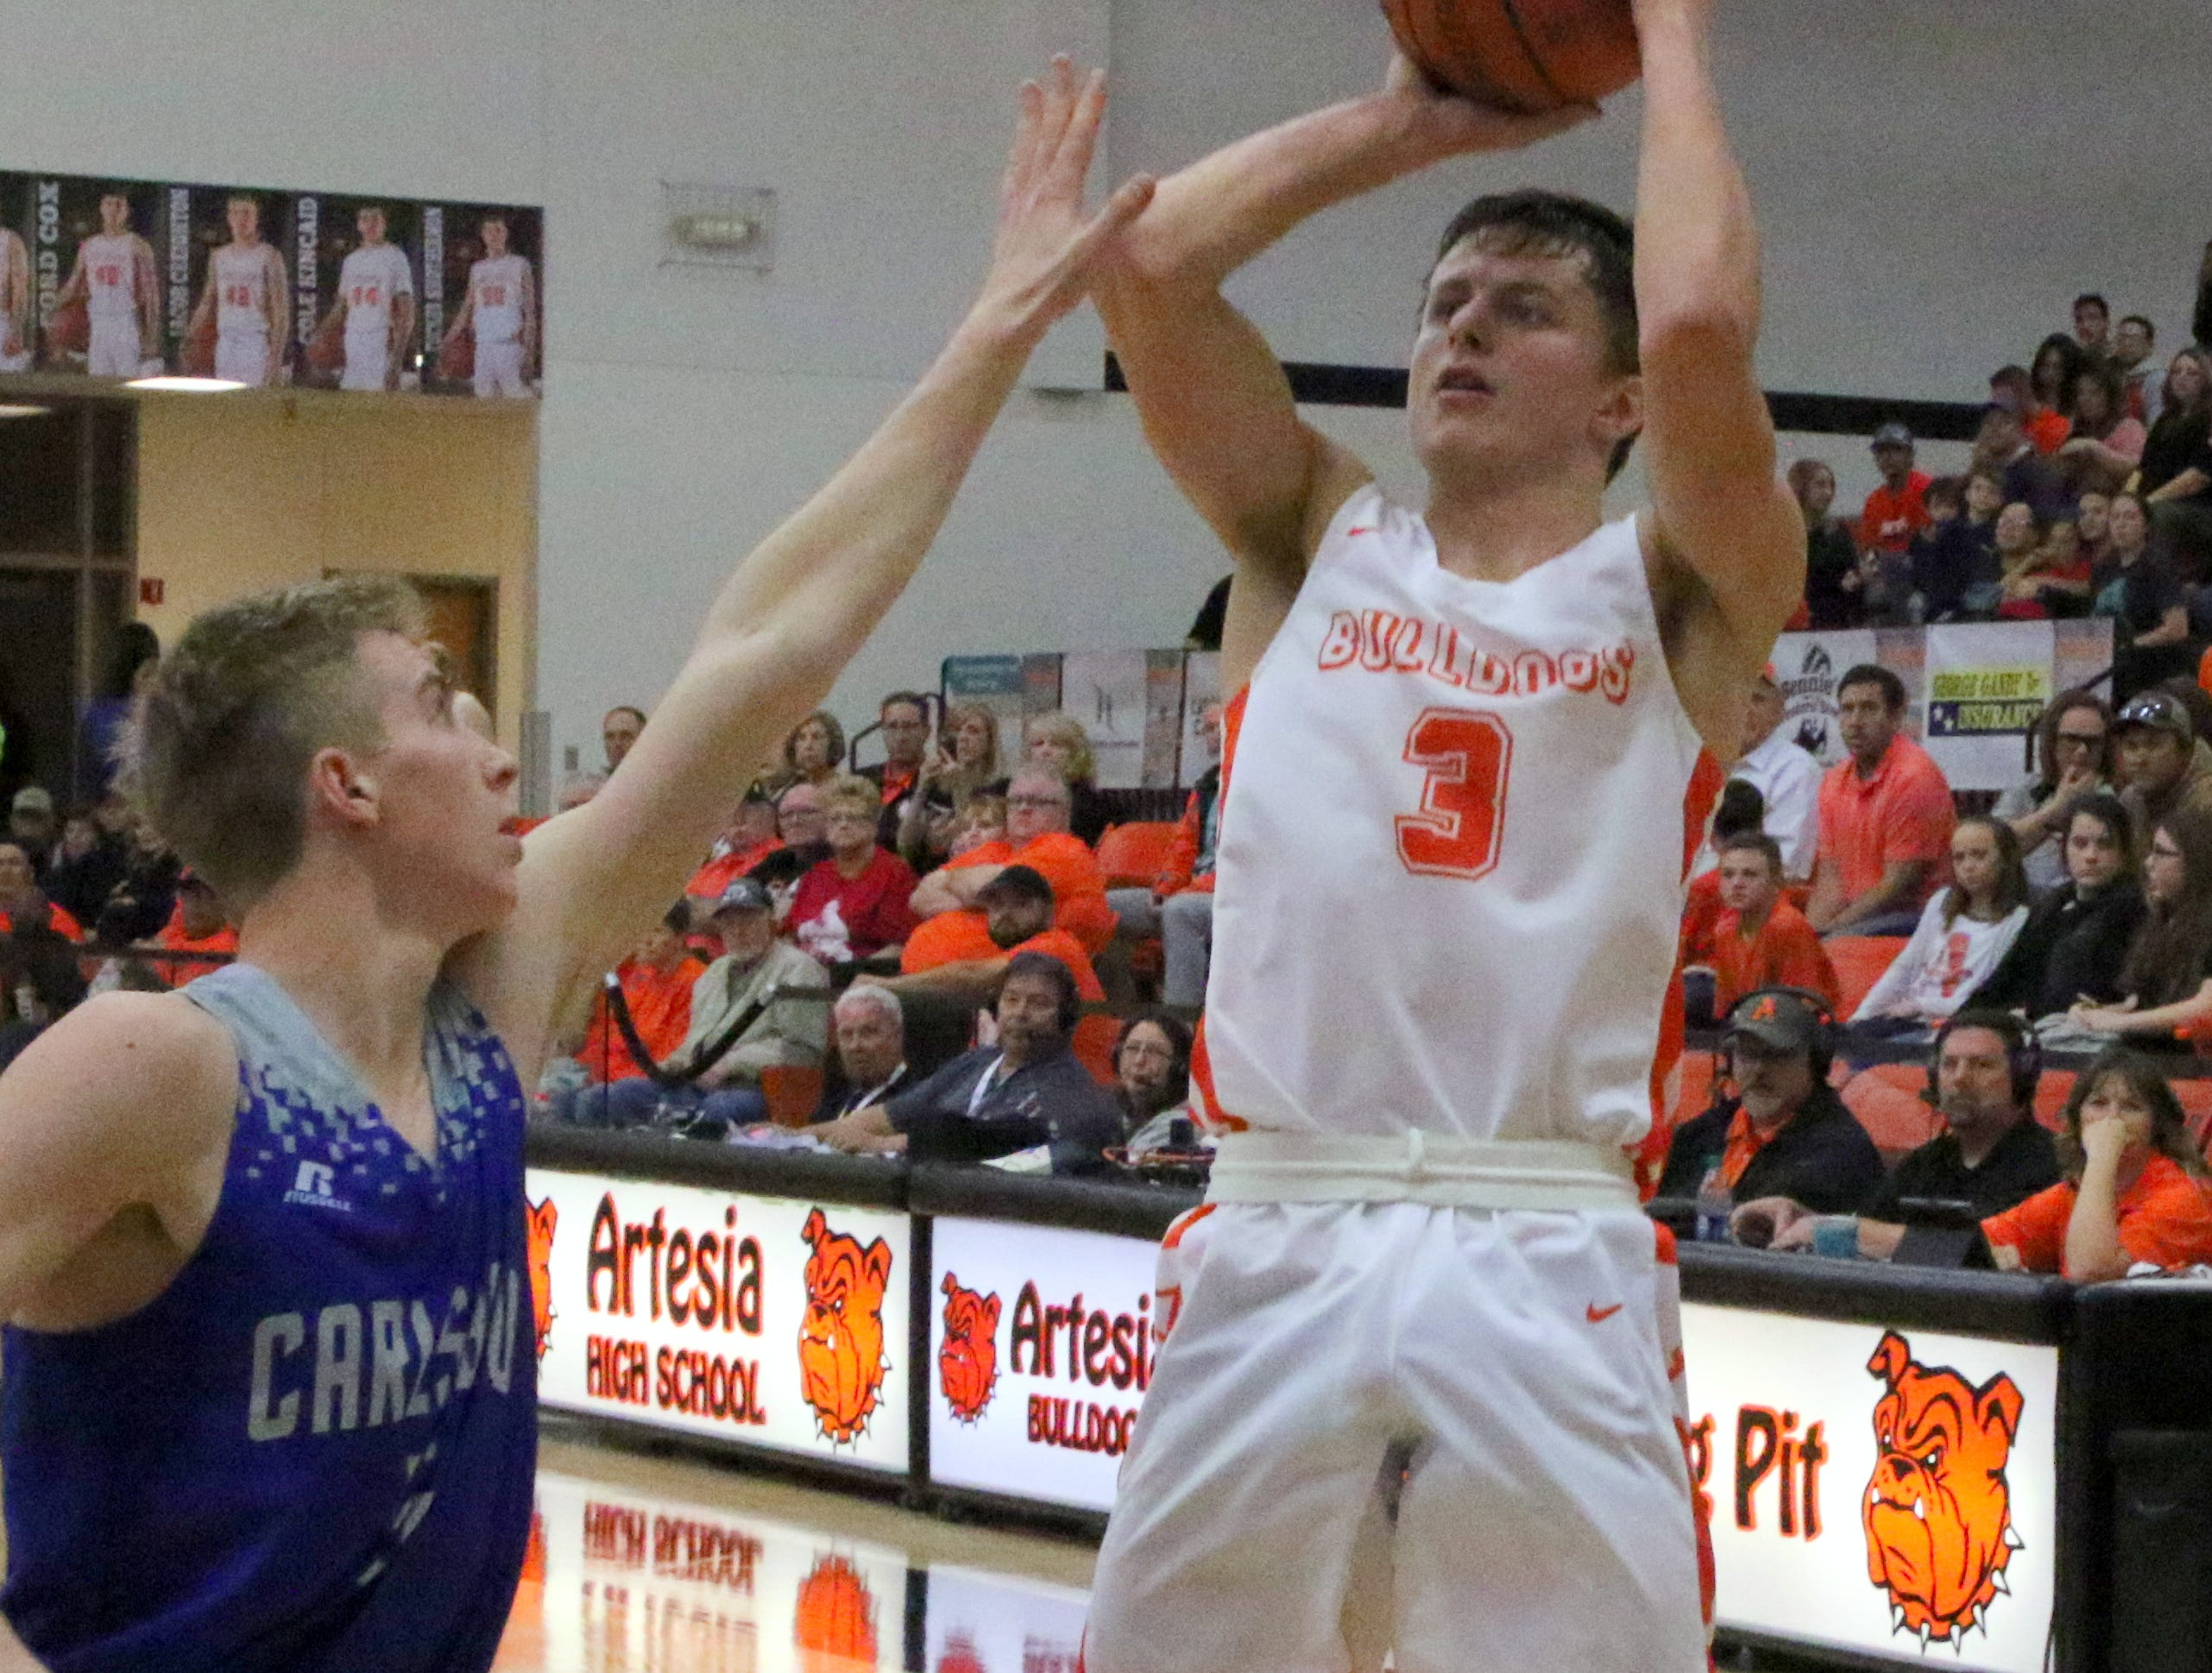 Artesia's Cody Smith takes a jump shot during Friday's game against Carlsbad. Smith finished with 10 points.